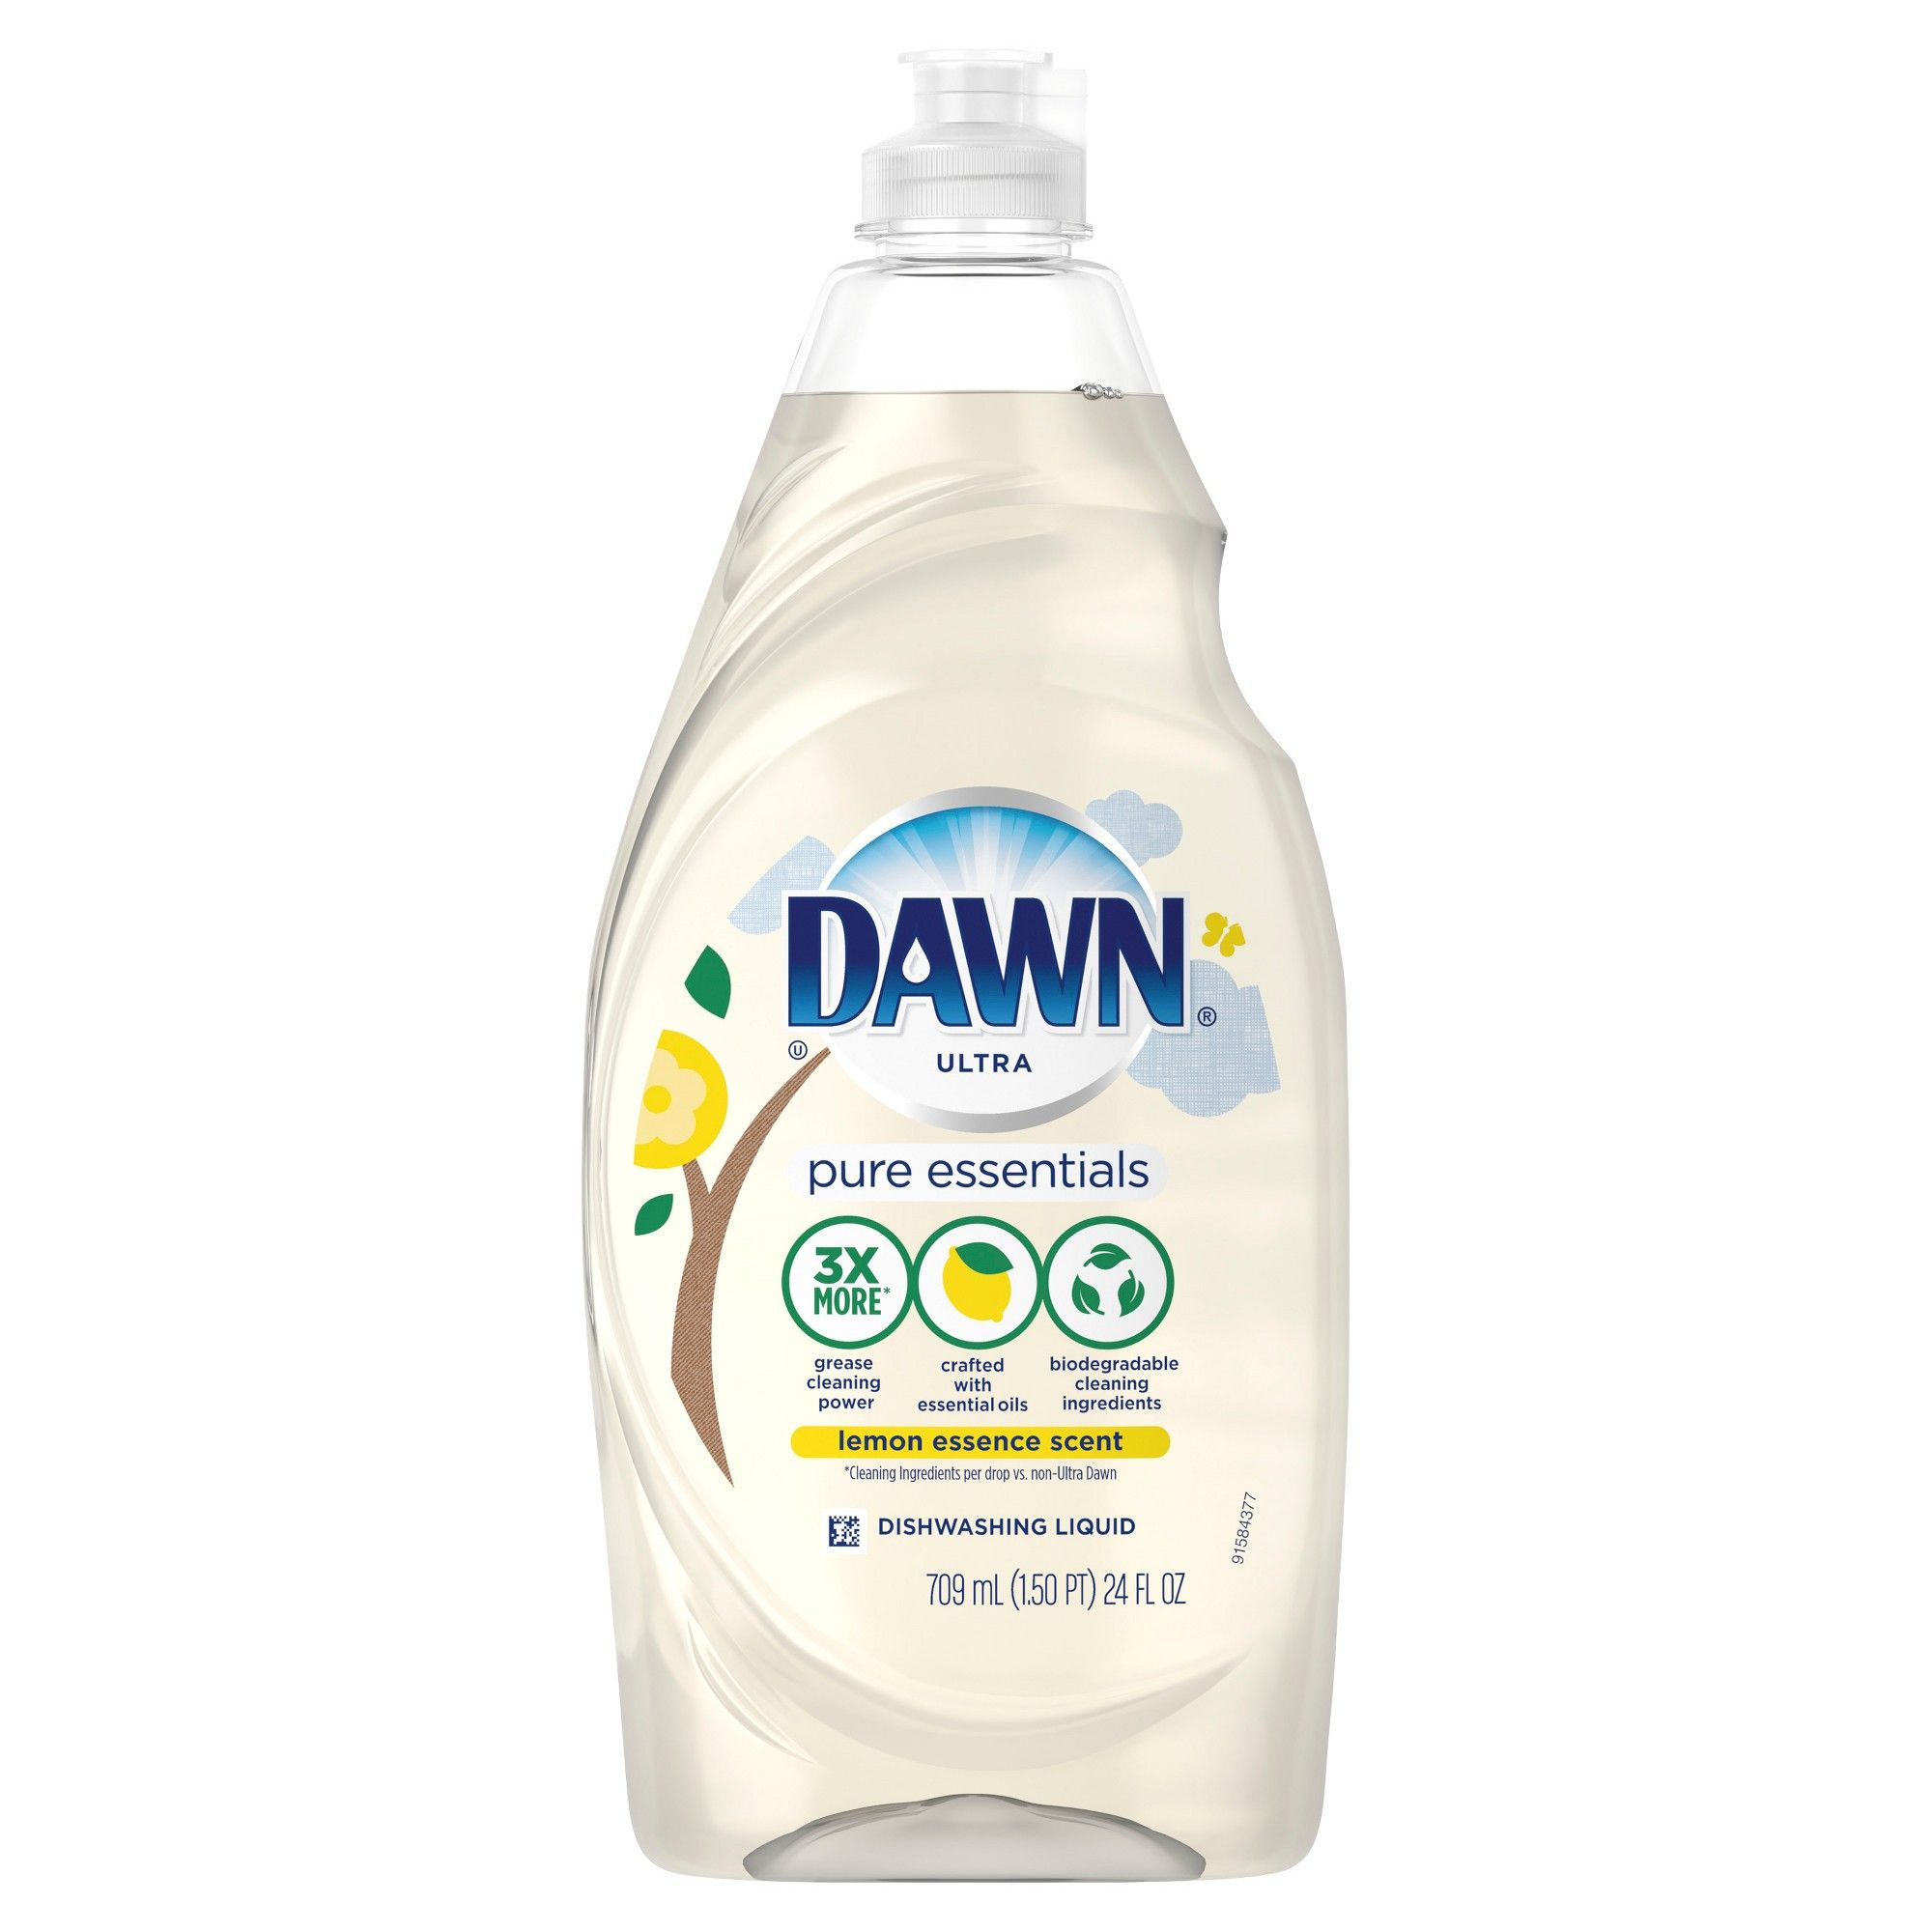 Dawn Free Clear Dishwashing Liquid Dish Soap Lemon Essence 24 Fl Oz Dishwashing Liquid Liquid Dish Soap Natural Dish Soap